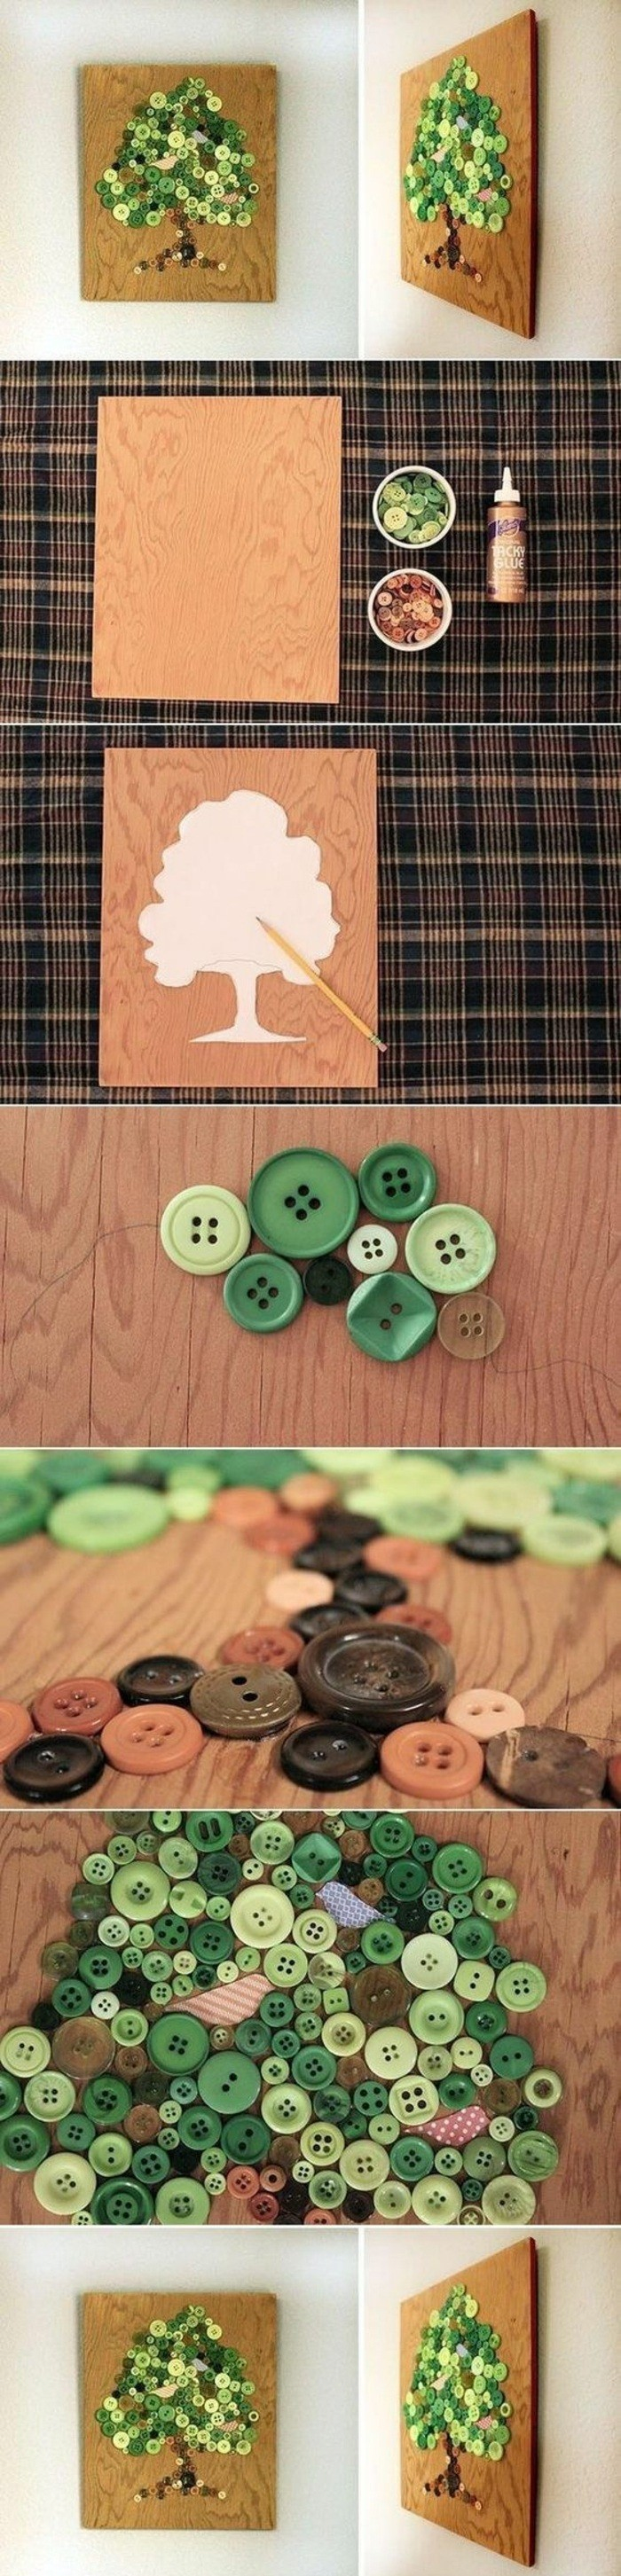 wooden board, green and brown buttons, forming a tree, unique wall decor, step by step, diy tutorial